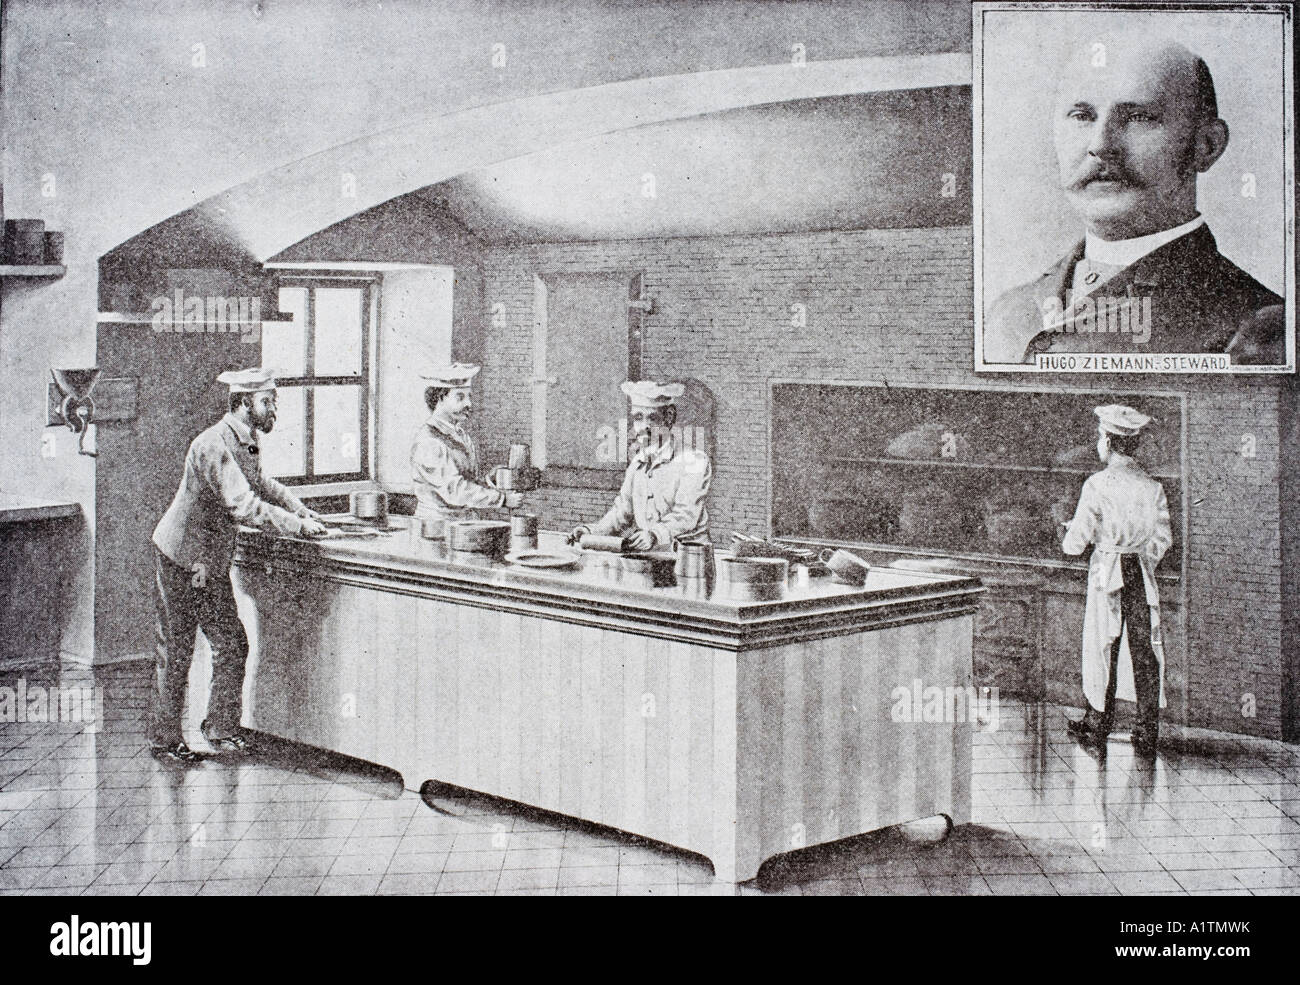 Kitchen of The White House in 1890 s with inset portrait of Hugo Ziemann White House steward - Stock Image